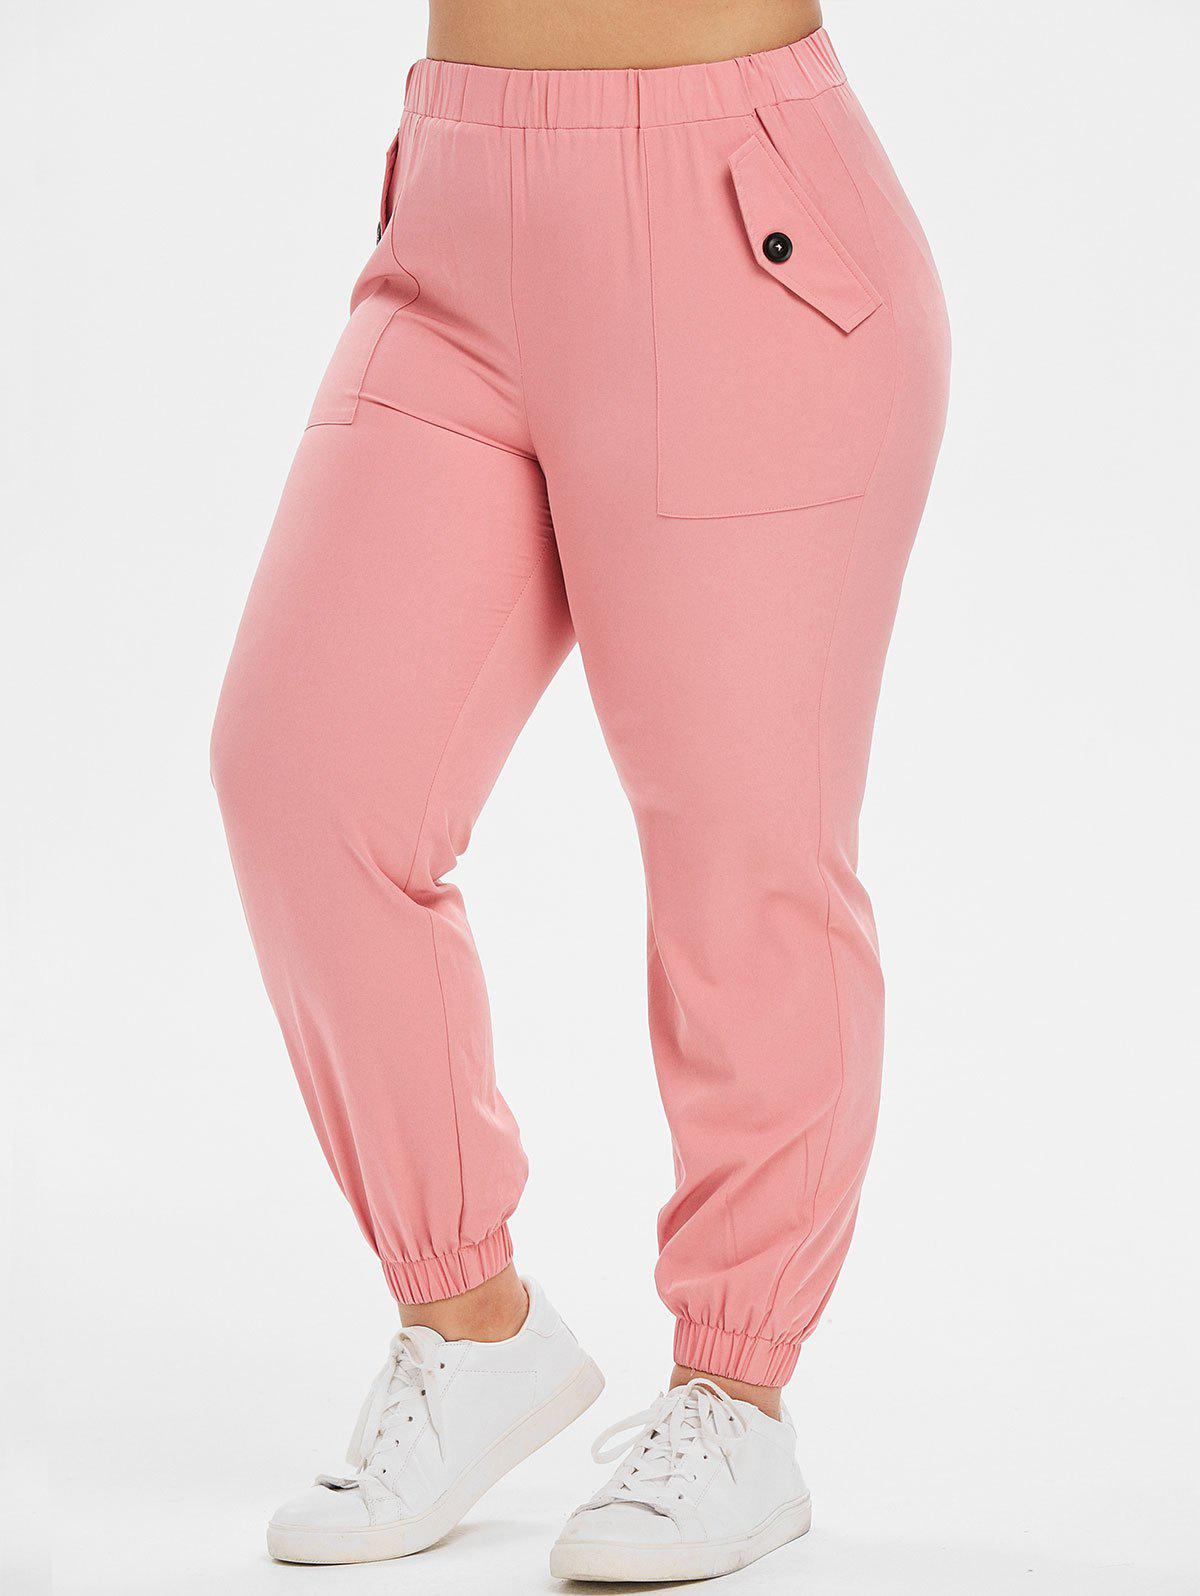 Fashion Plus Size High Waist Jogger Pants